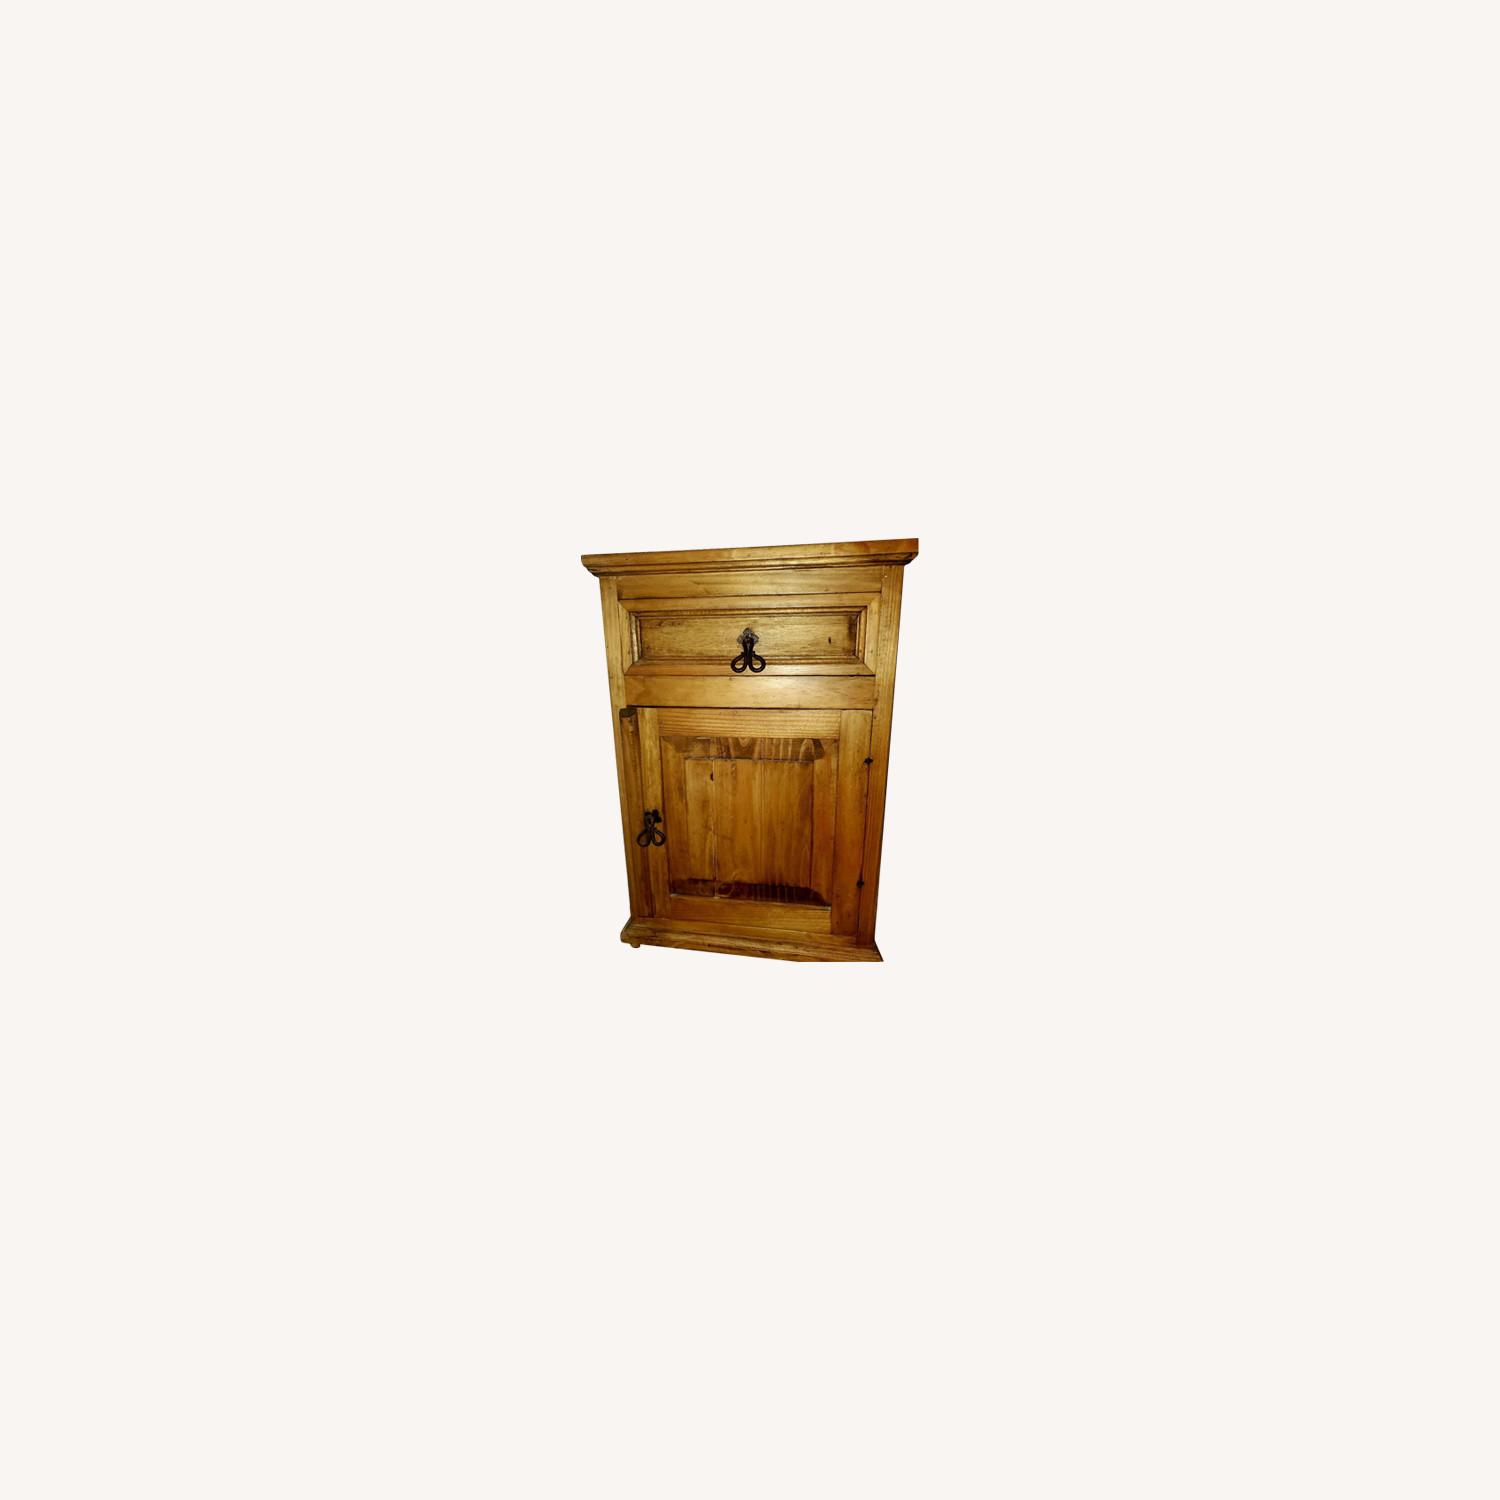 Wooden Bedside Tables with Rustic Hardware - image-0